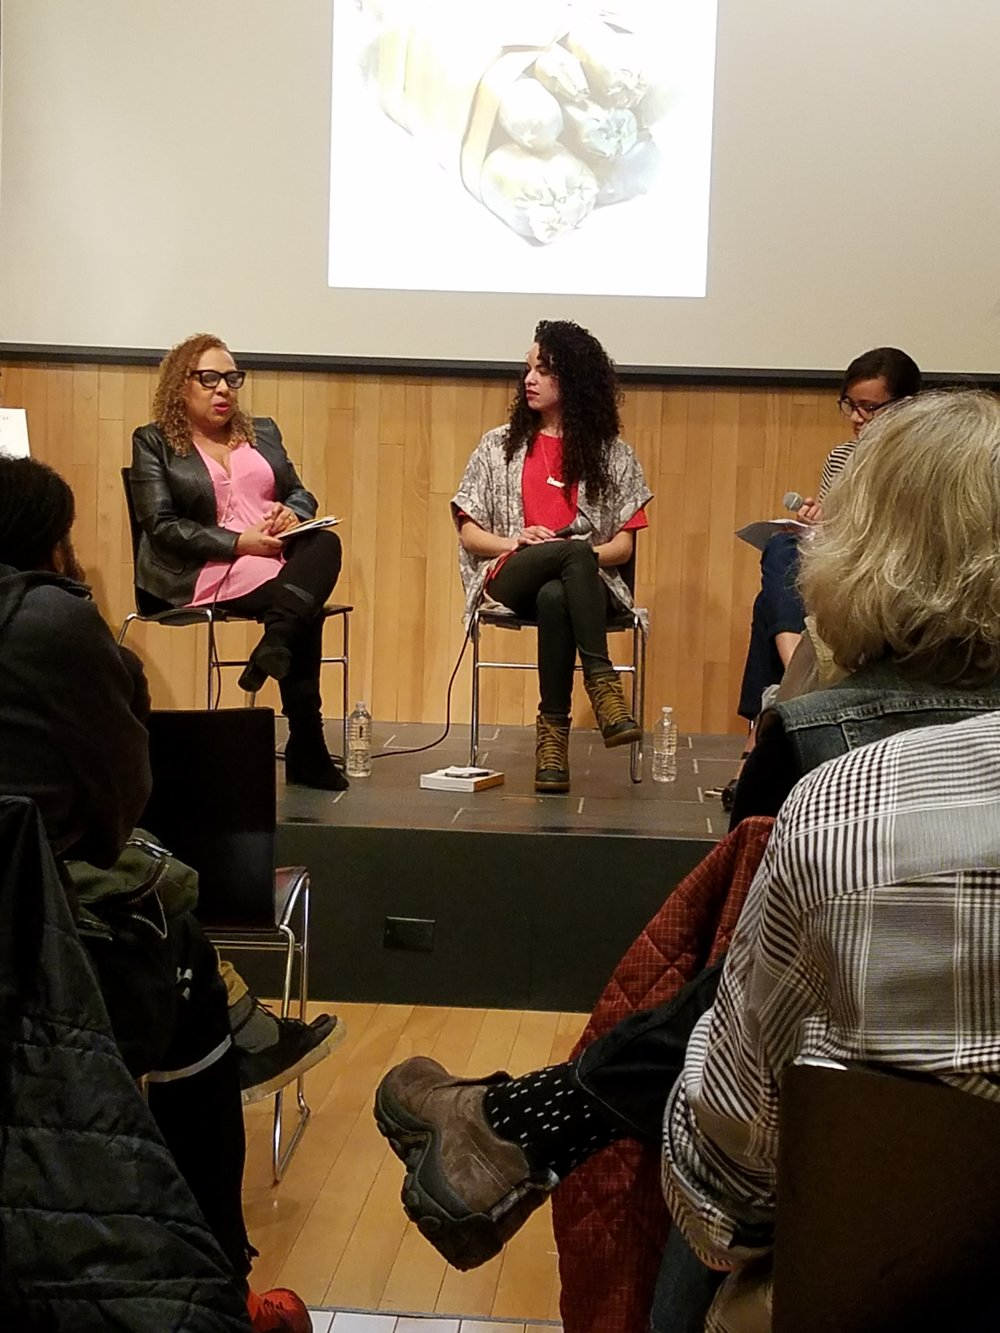 Dr. Jones and Sadie Barnette discuss art and activism in Los Angeles.